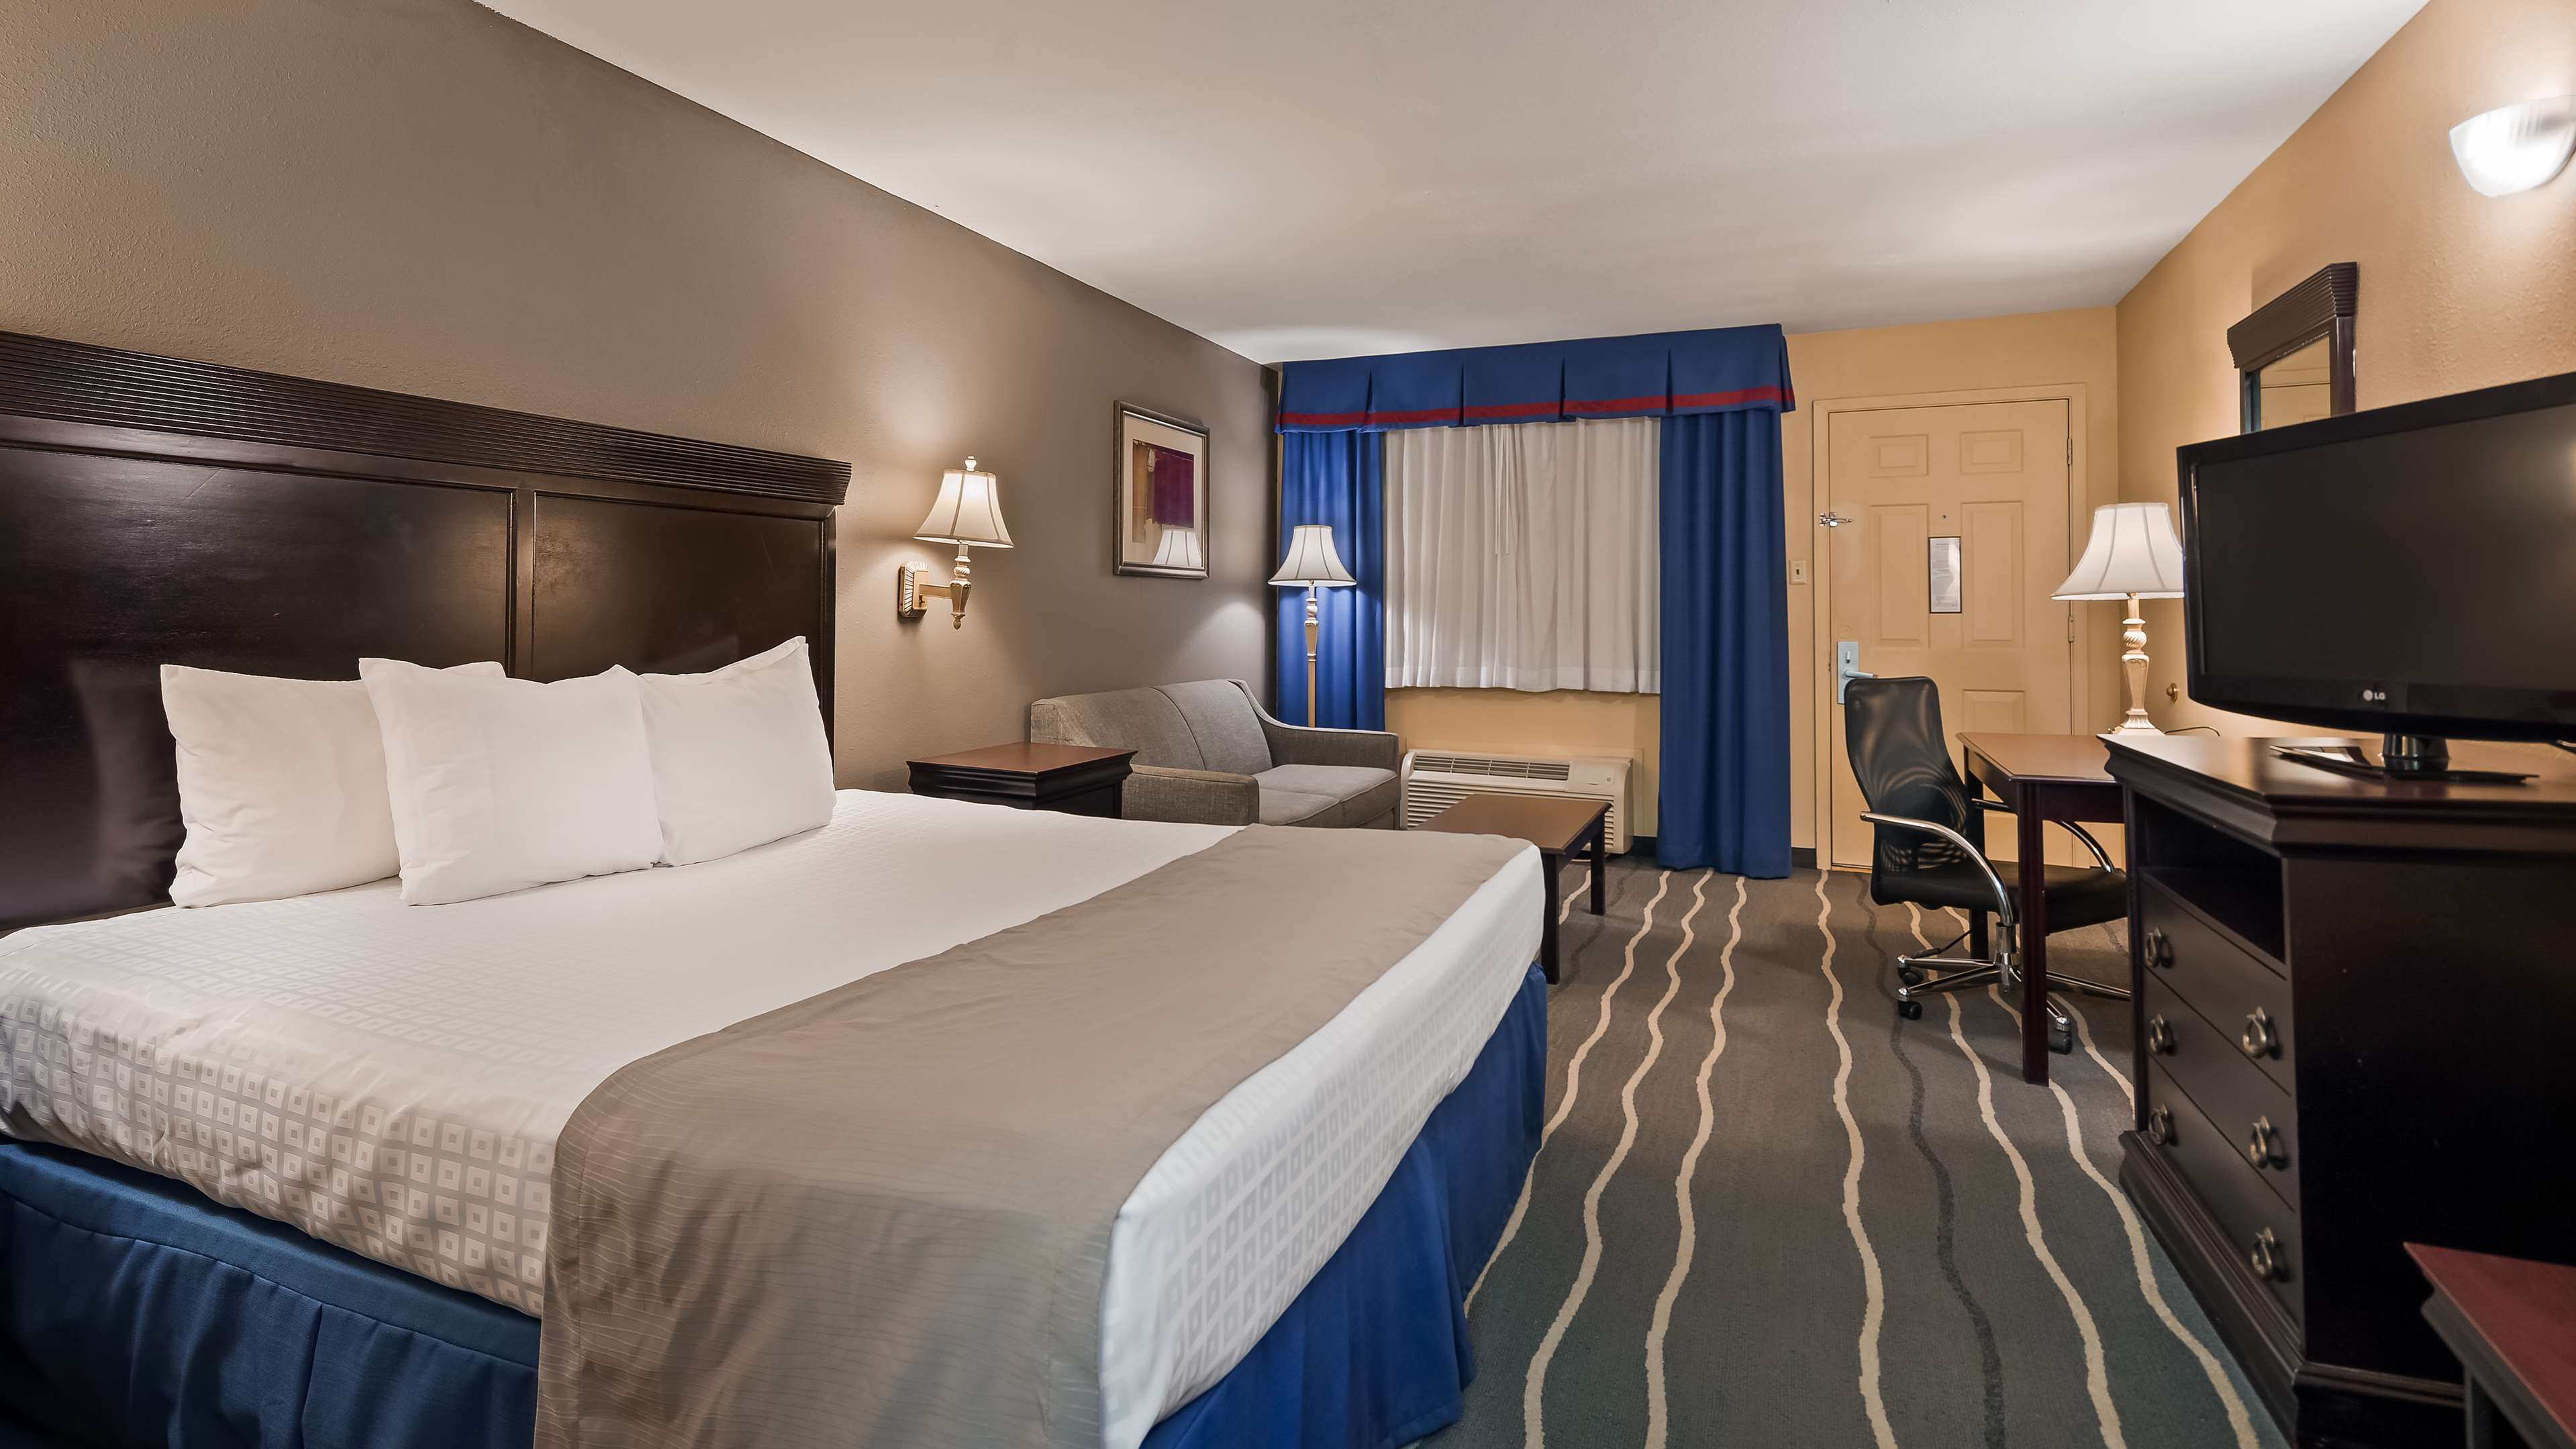 Best Western Irving Inn & Suites at DFW Airport image 16